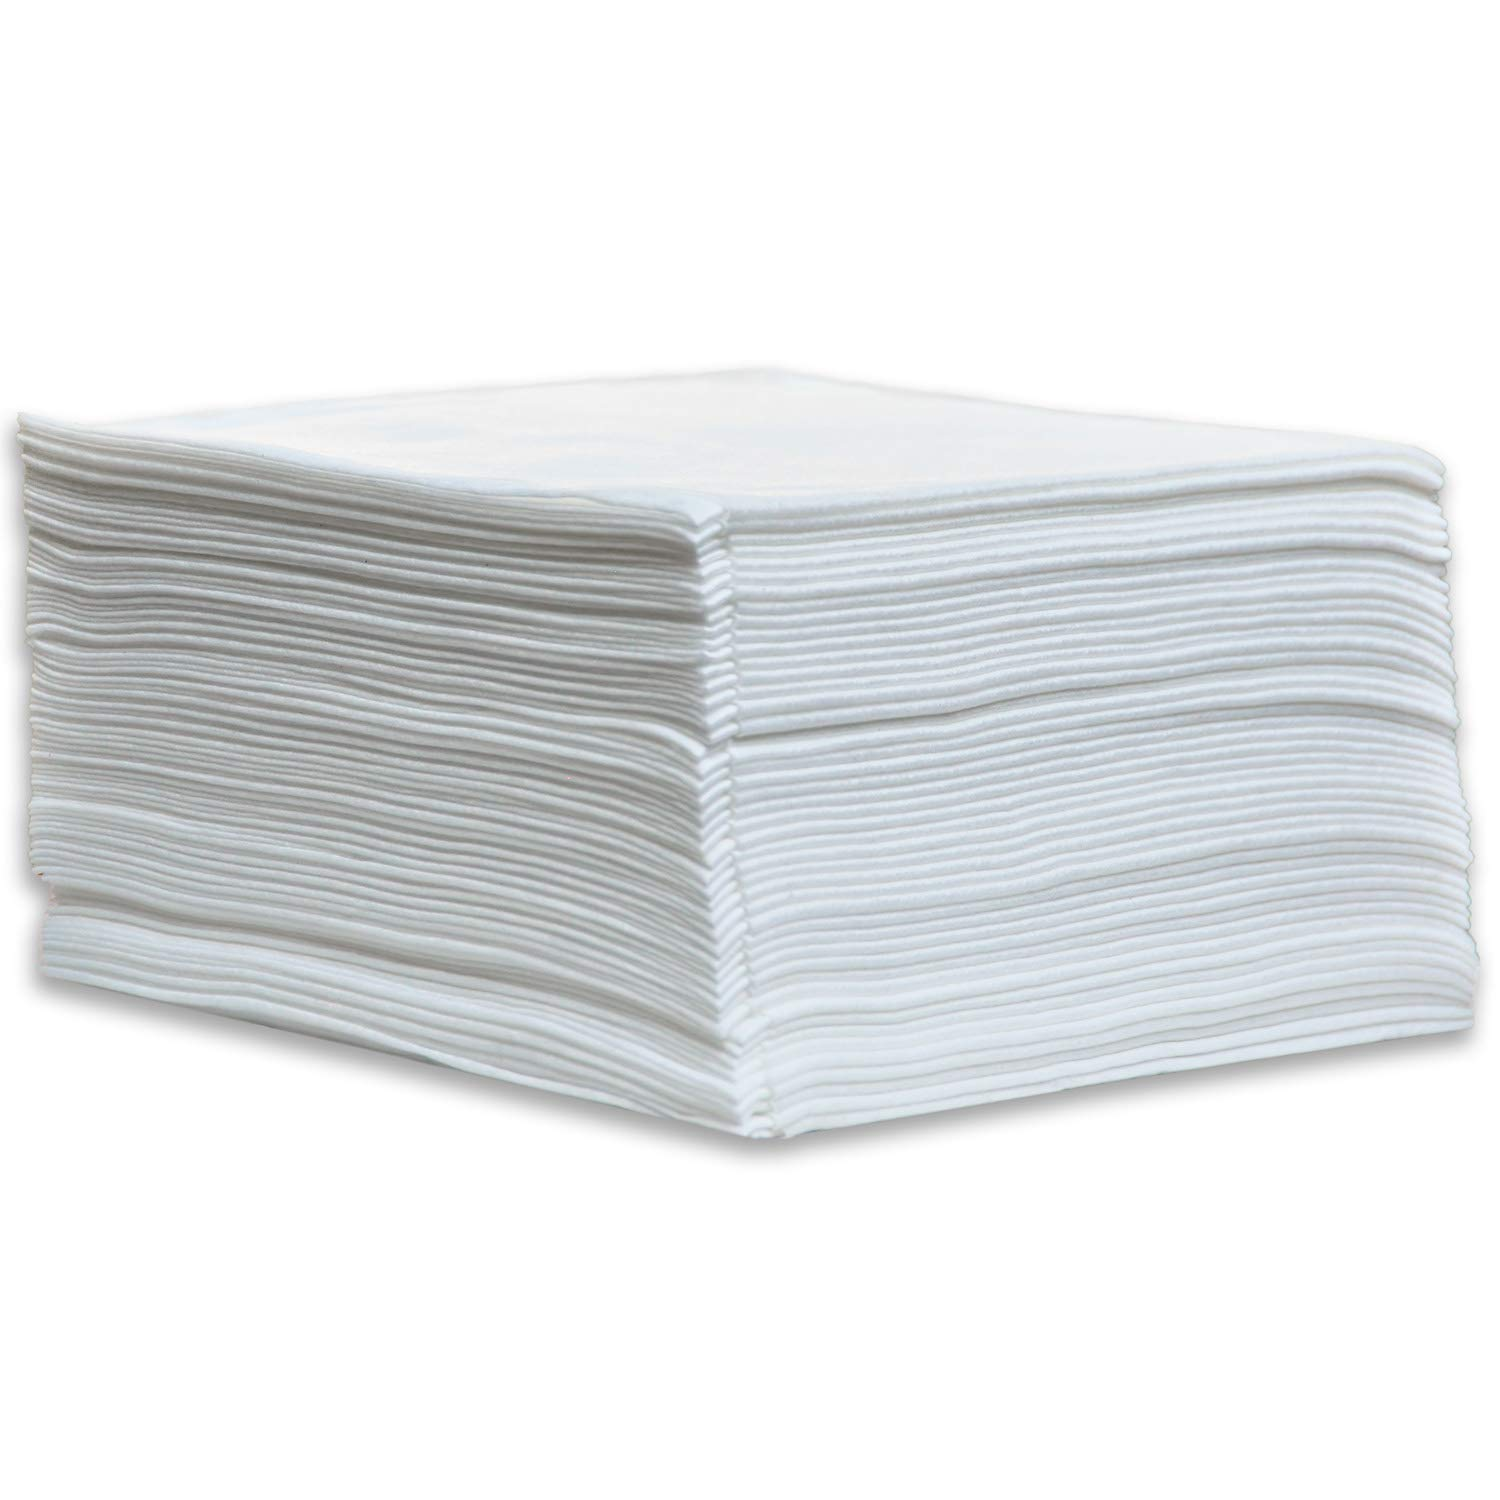 DAVELEN Disposable Large Luxury Towels Spa and Salon Quality Softness for Guests, Clients | Hair, Face, Body Use | Luxurious Comfort, Hygienic, Ecofriendly | Towels Size: 31.5'' x 15'' (100, white) by DAVELEN